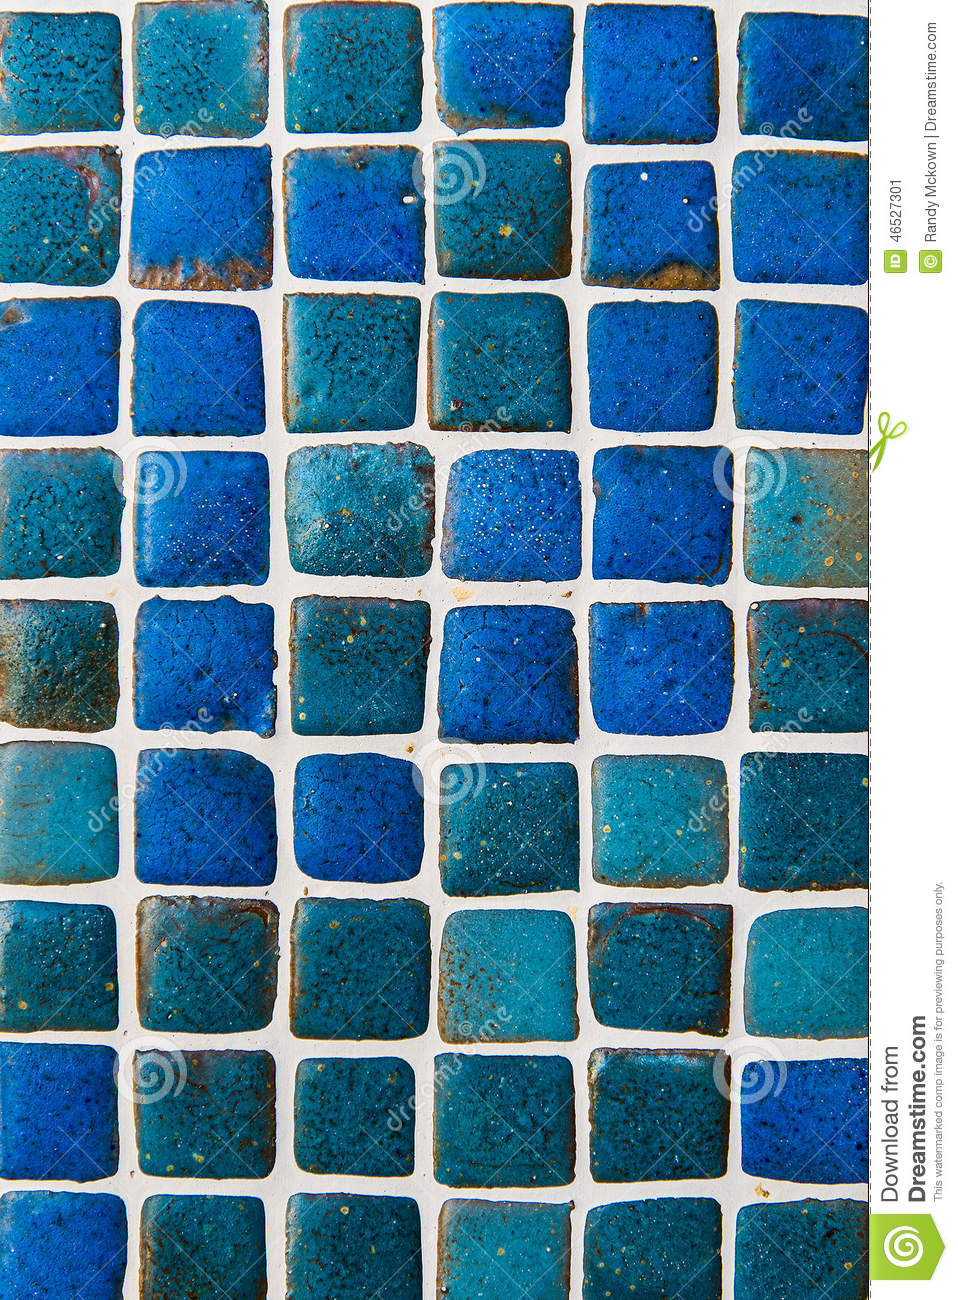 Blue Ceramic Tile Background Pattern / Texture Stock Image - Image ...